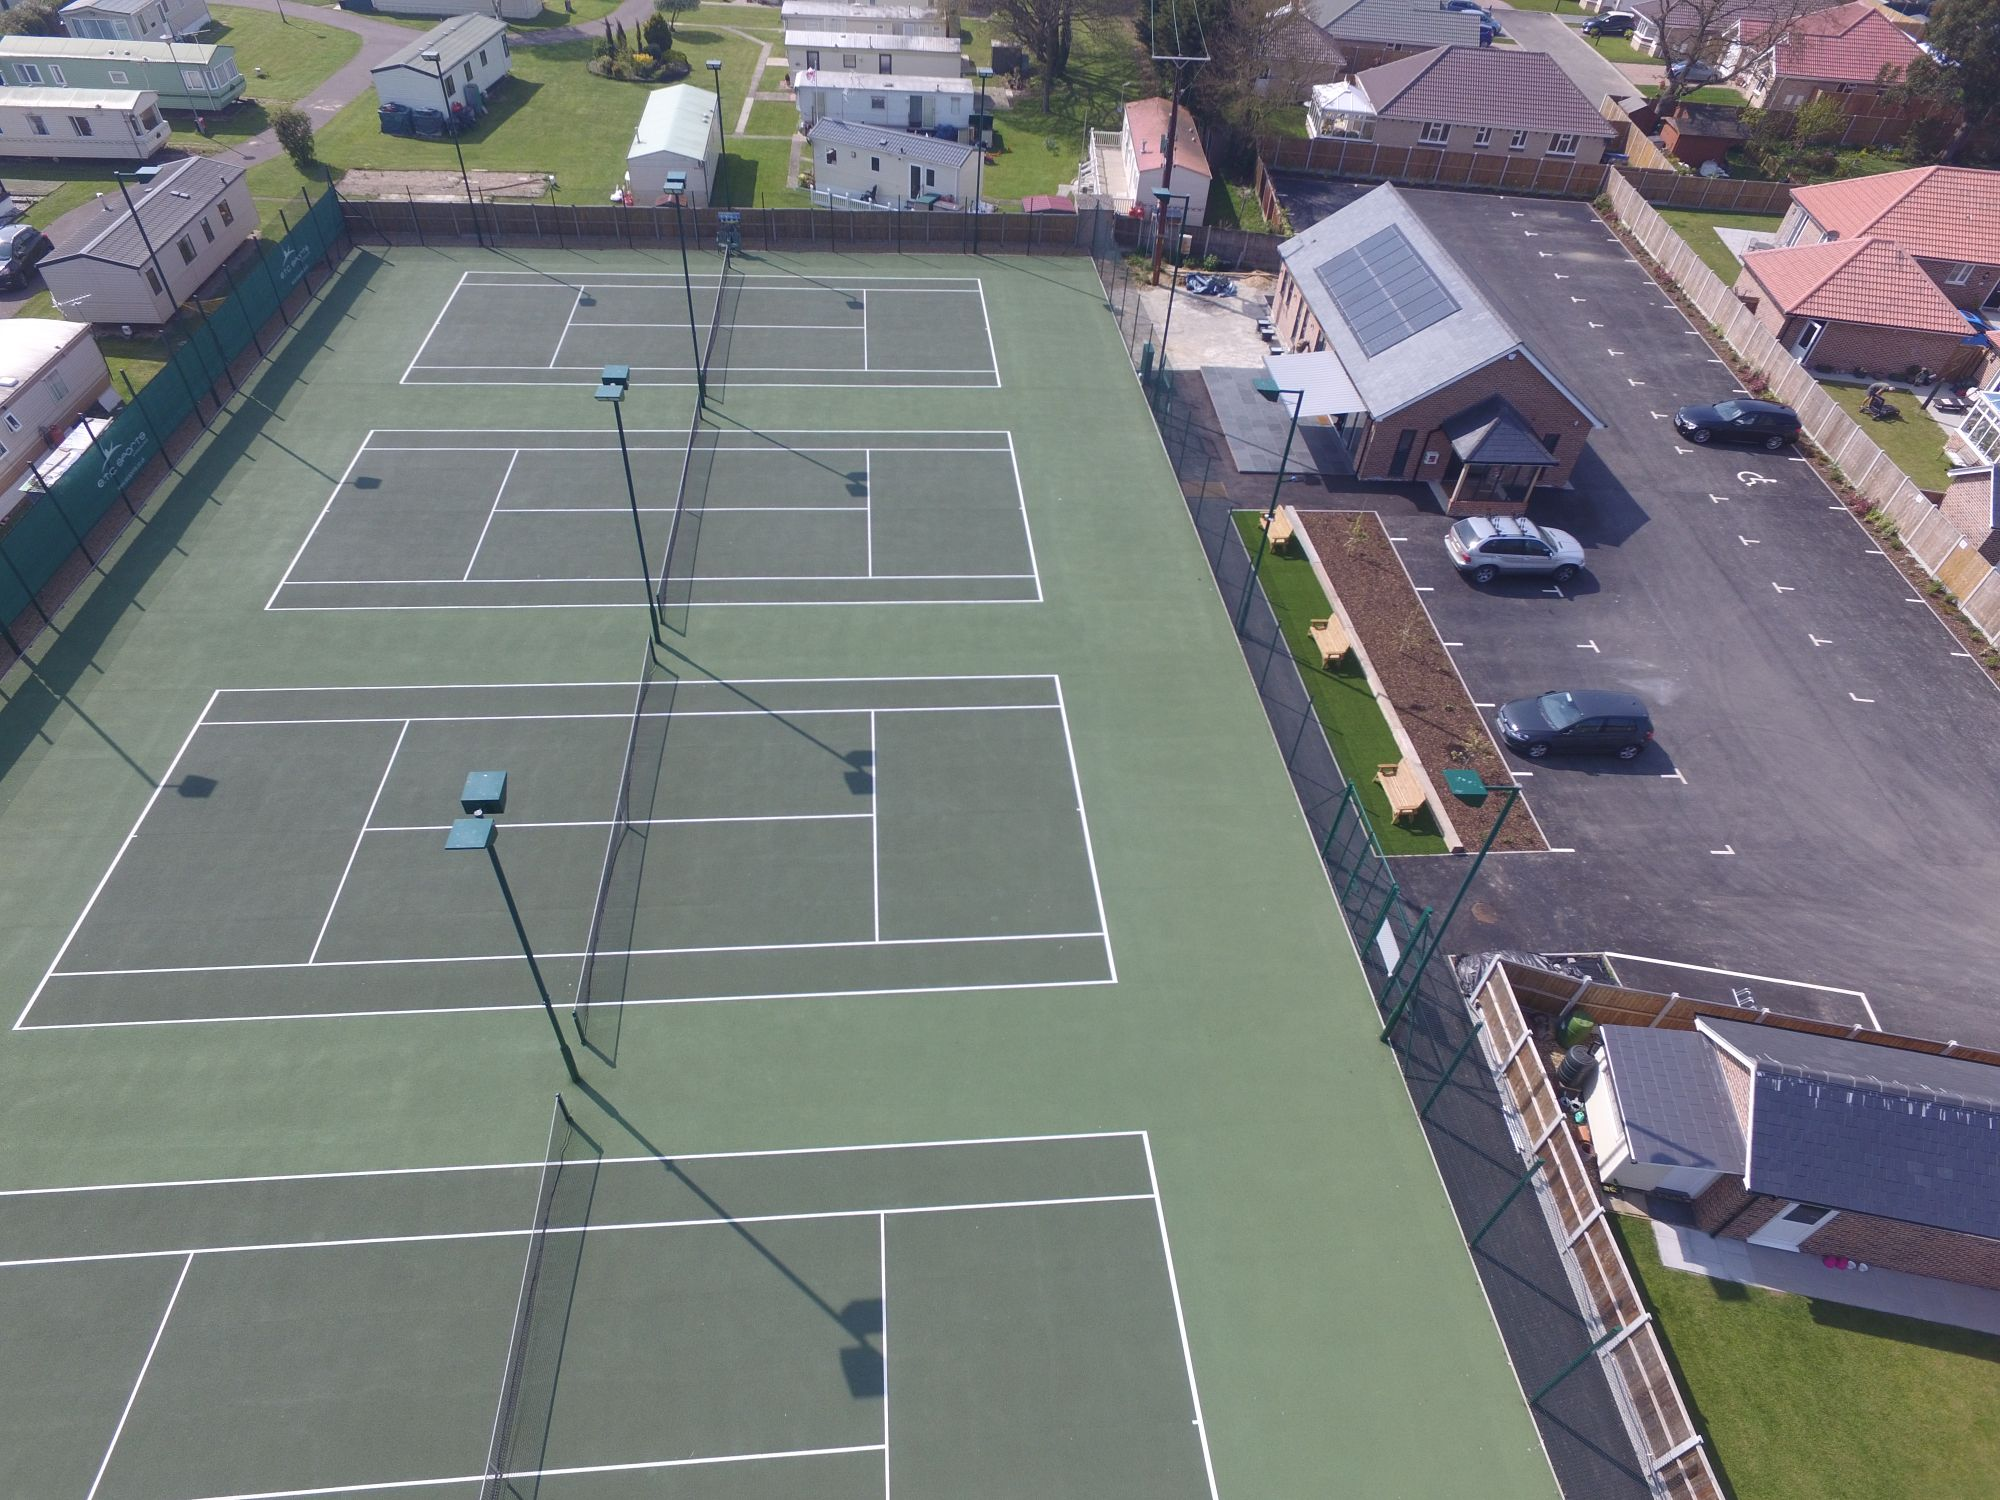 This major tennis club upgrade includes four new asphalt tennis courts plus access, floodlighting and finishing works